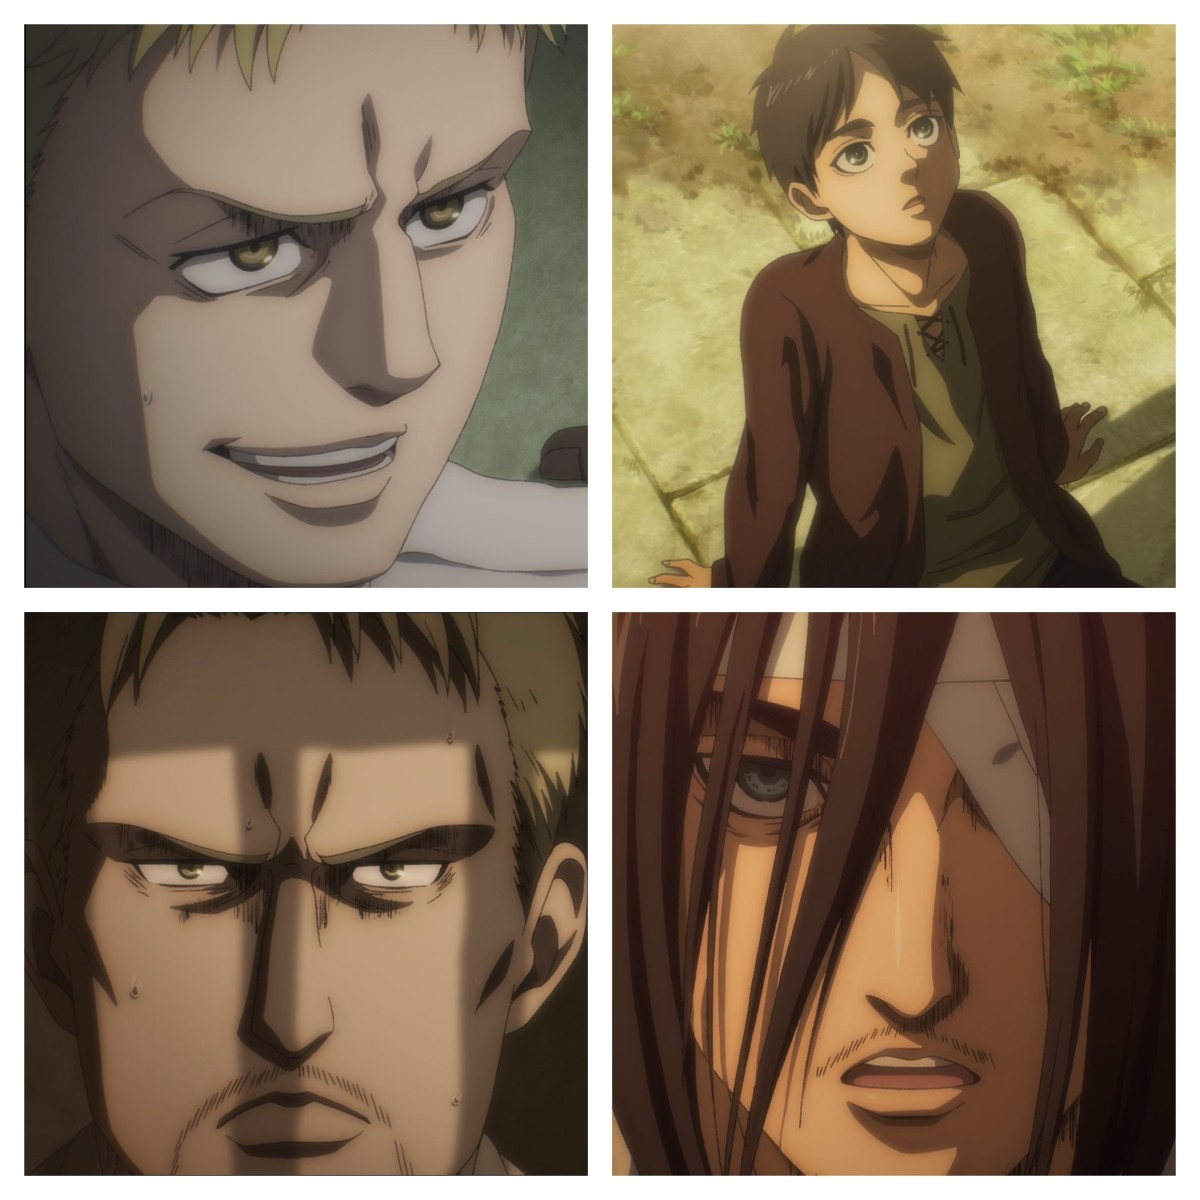 the-door-of-hope-attack-on-titan-season-4-episode-3-review